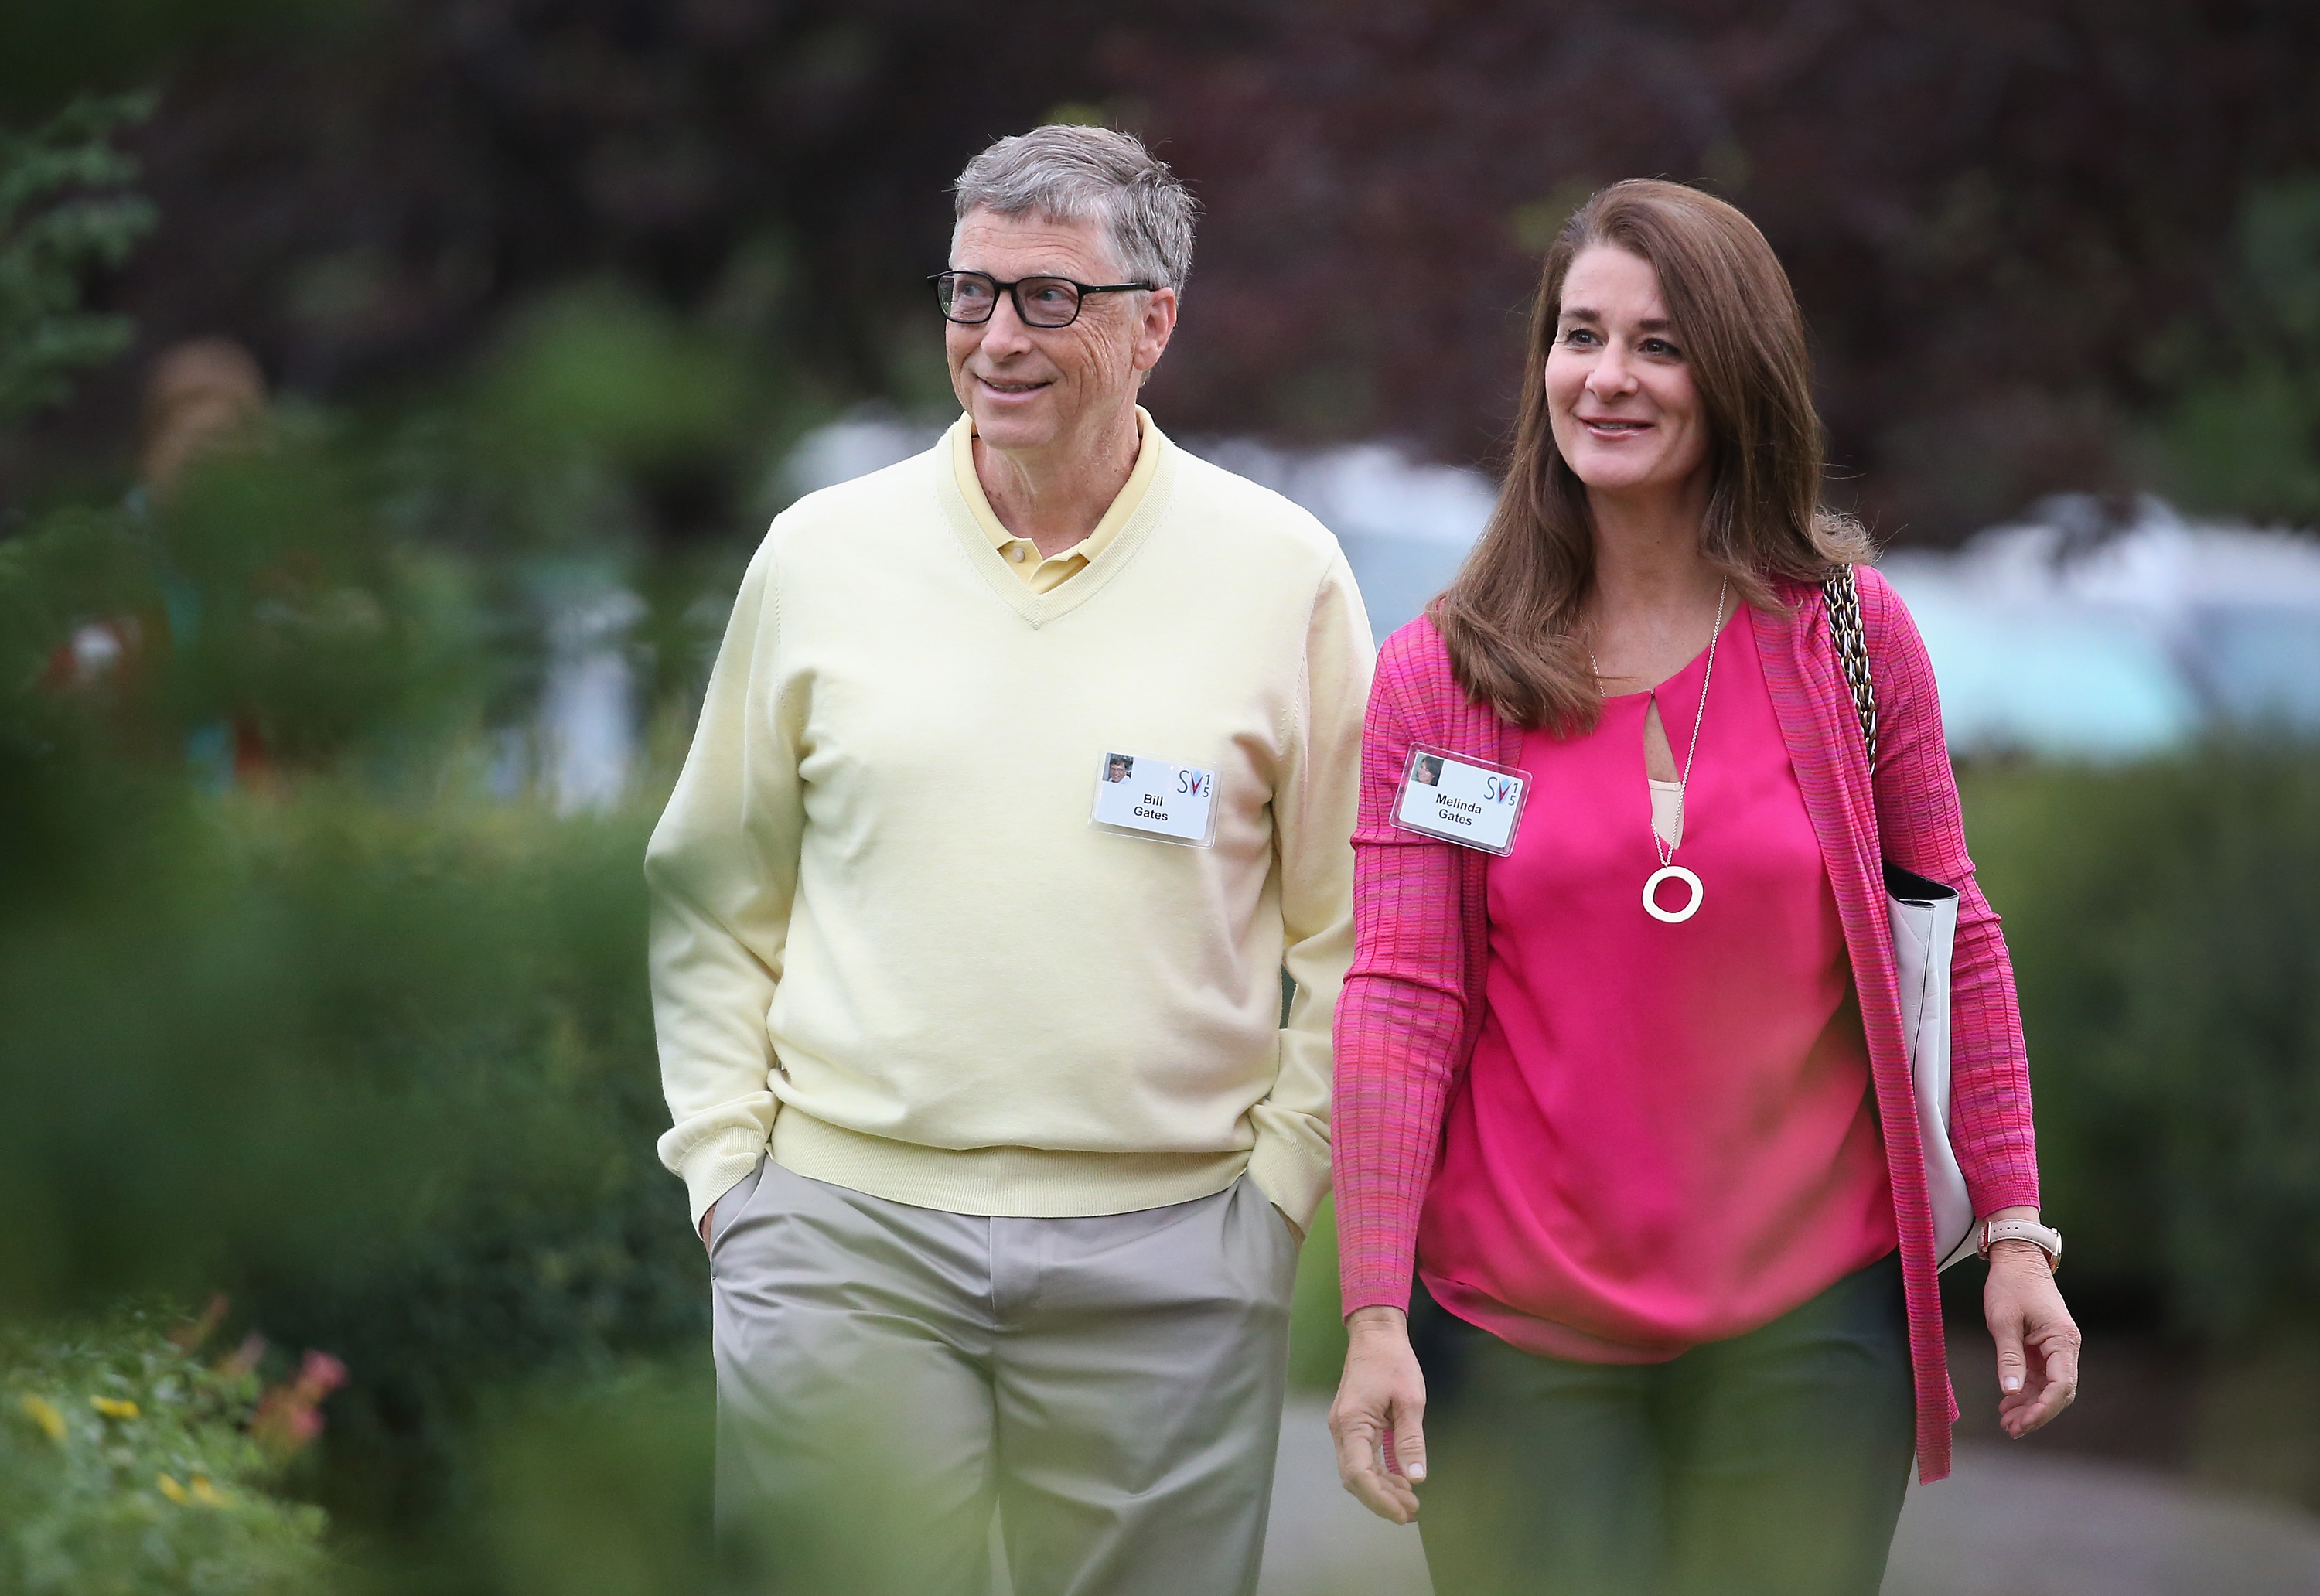 Bill and Melinda Gates at the Allen & Company Sun Valley Conference in Sun Valley, Idaho on July 11, 2015.